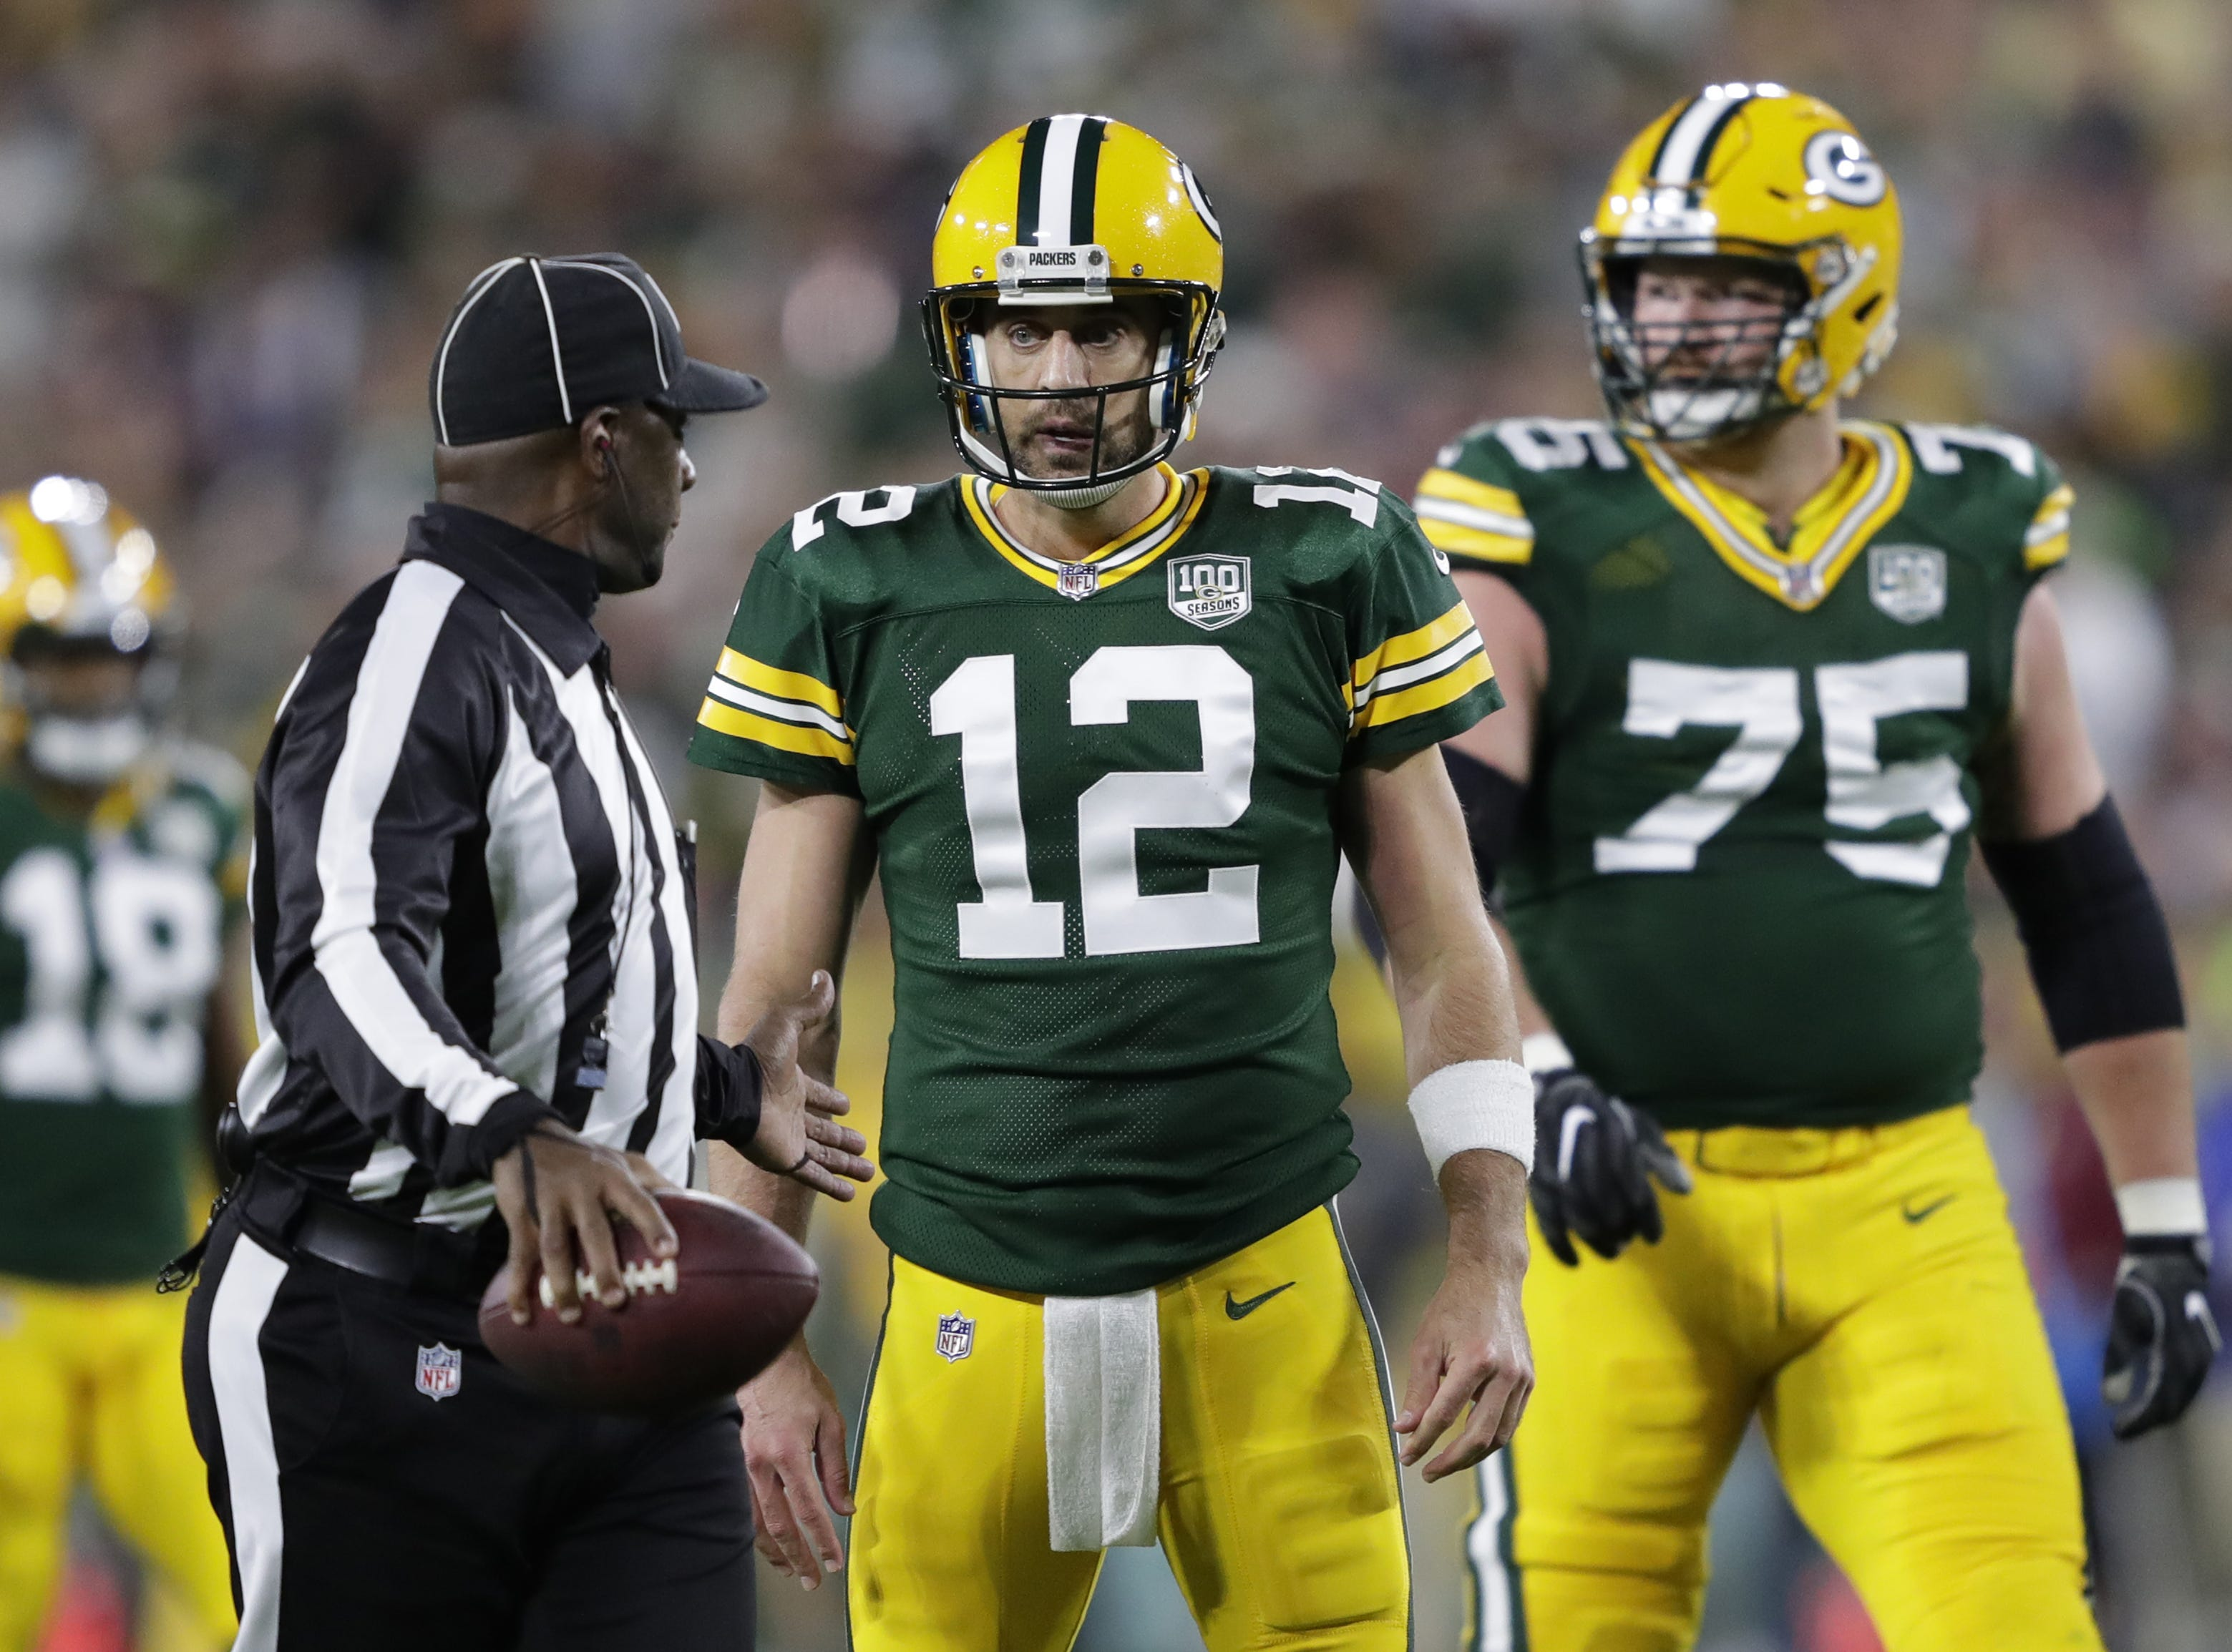 Green Bay Packers quarterback Aaron Rodgers (12) questions a call by an official against the Chicago Bears Sunday, Sept. 9, 2018, at Lambeau Field in Green Bay, Wis.